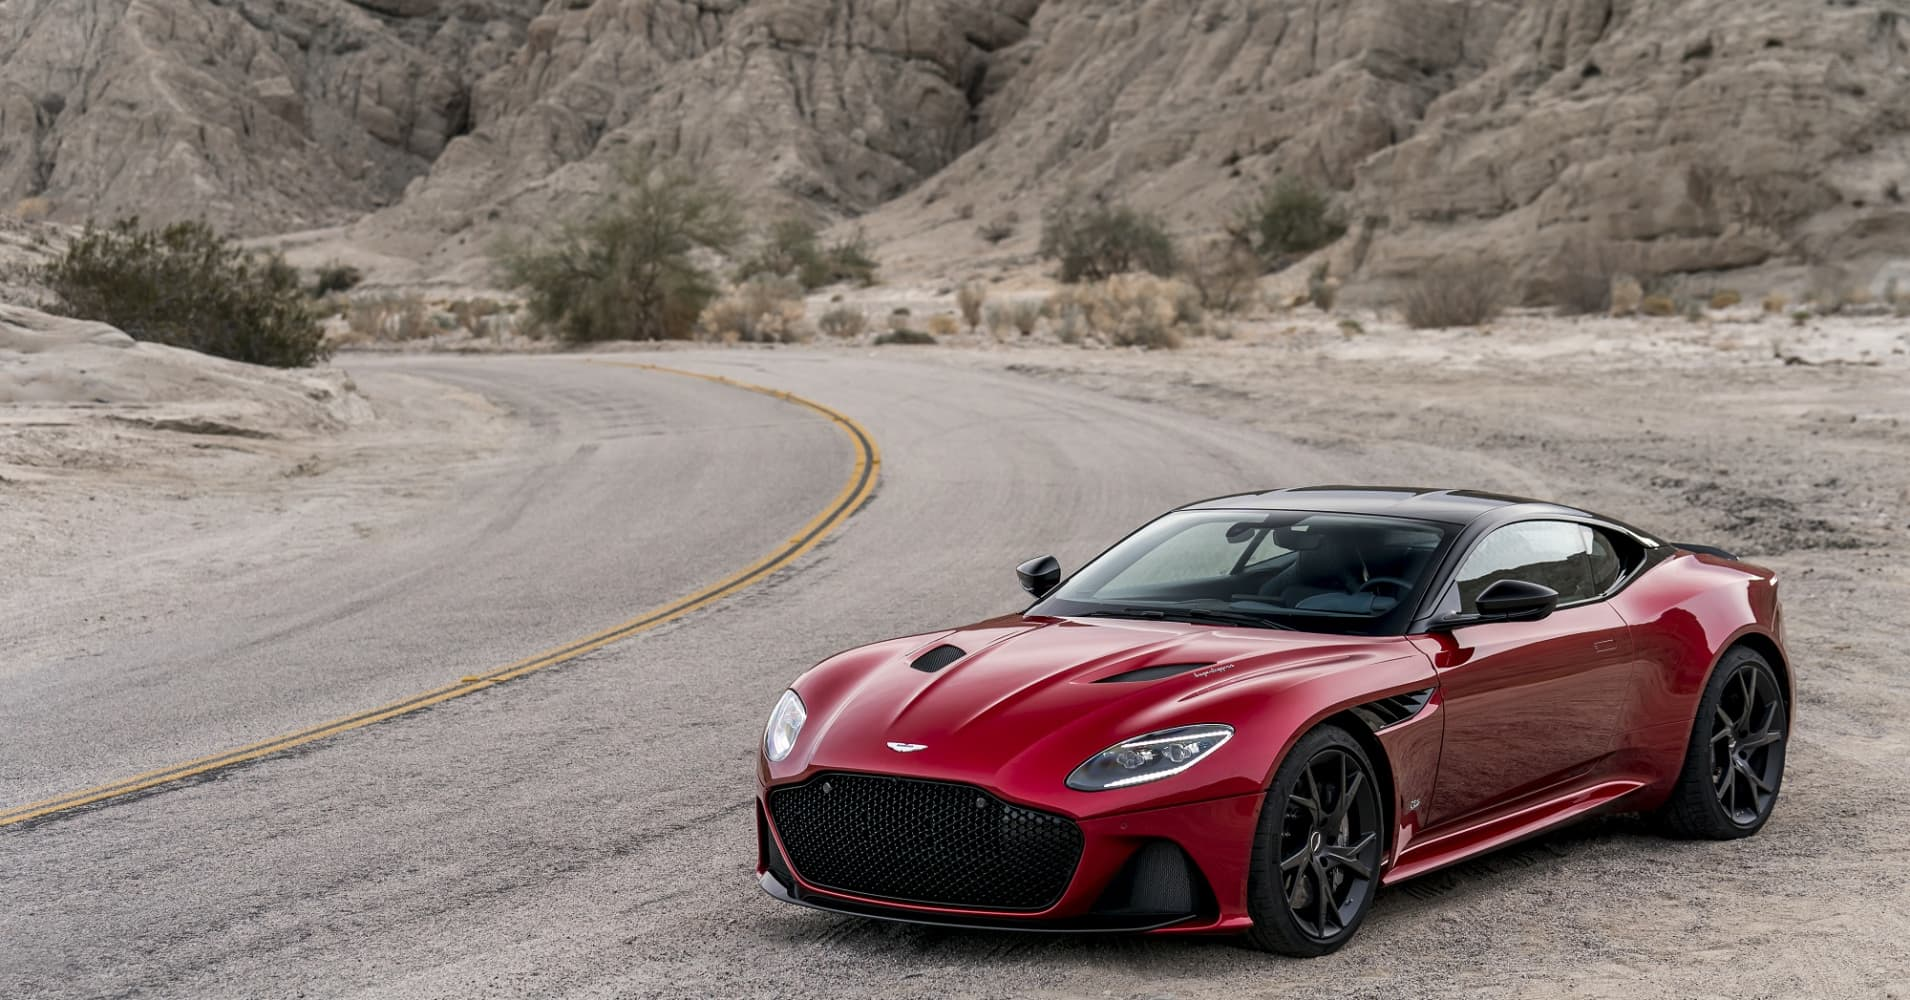 photos: new $305,000 aston martin dbs superleggera supercar